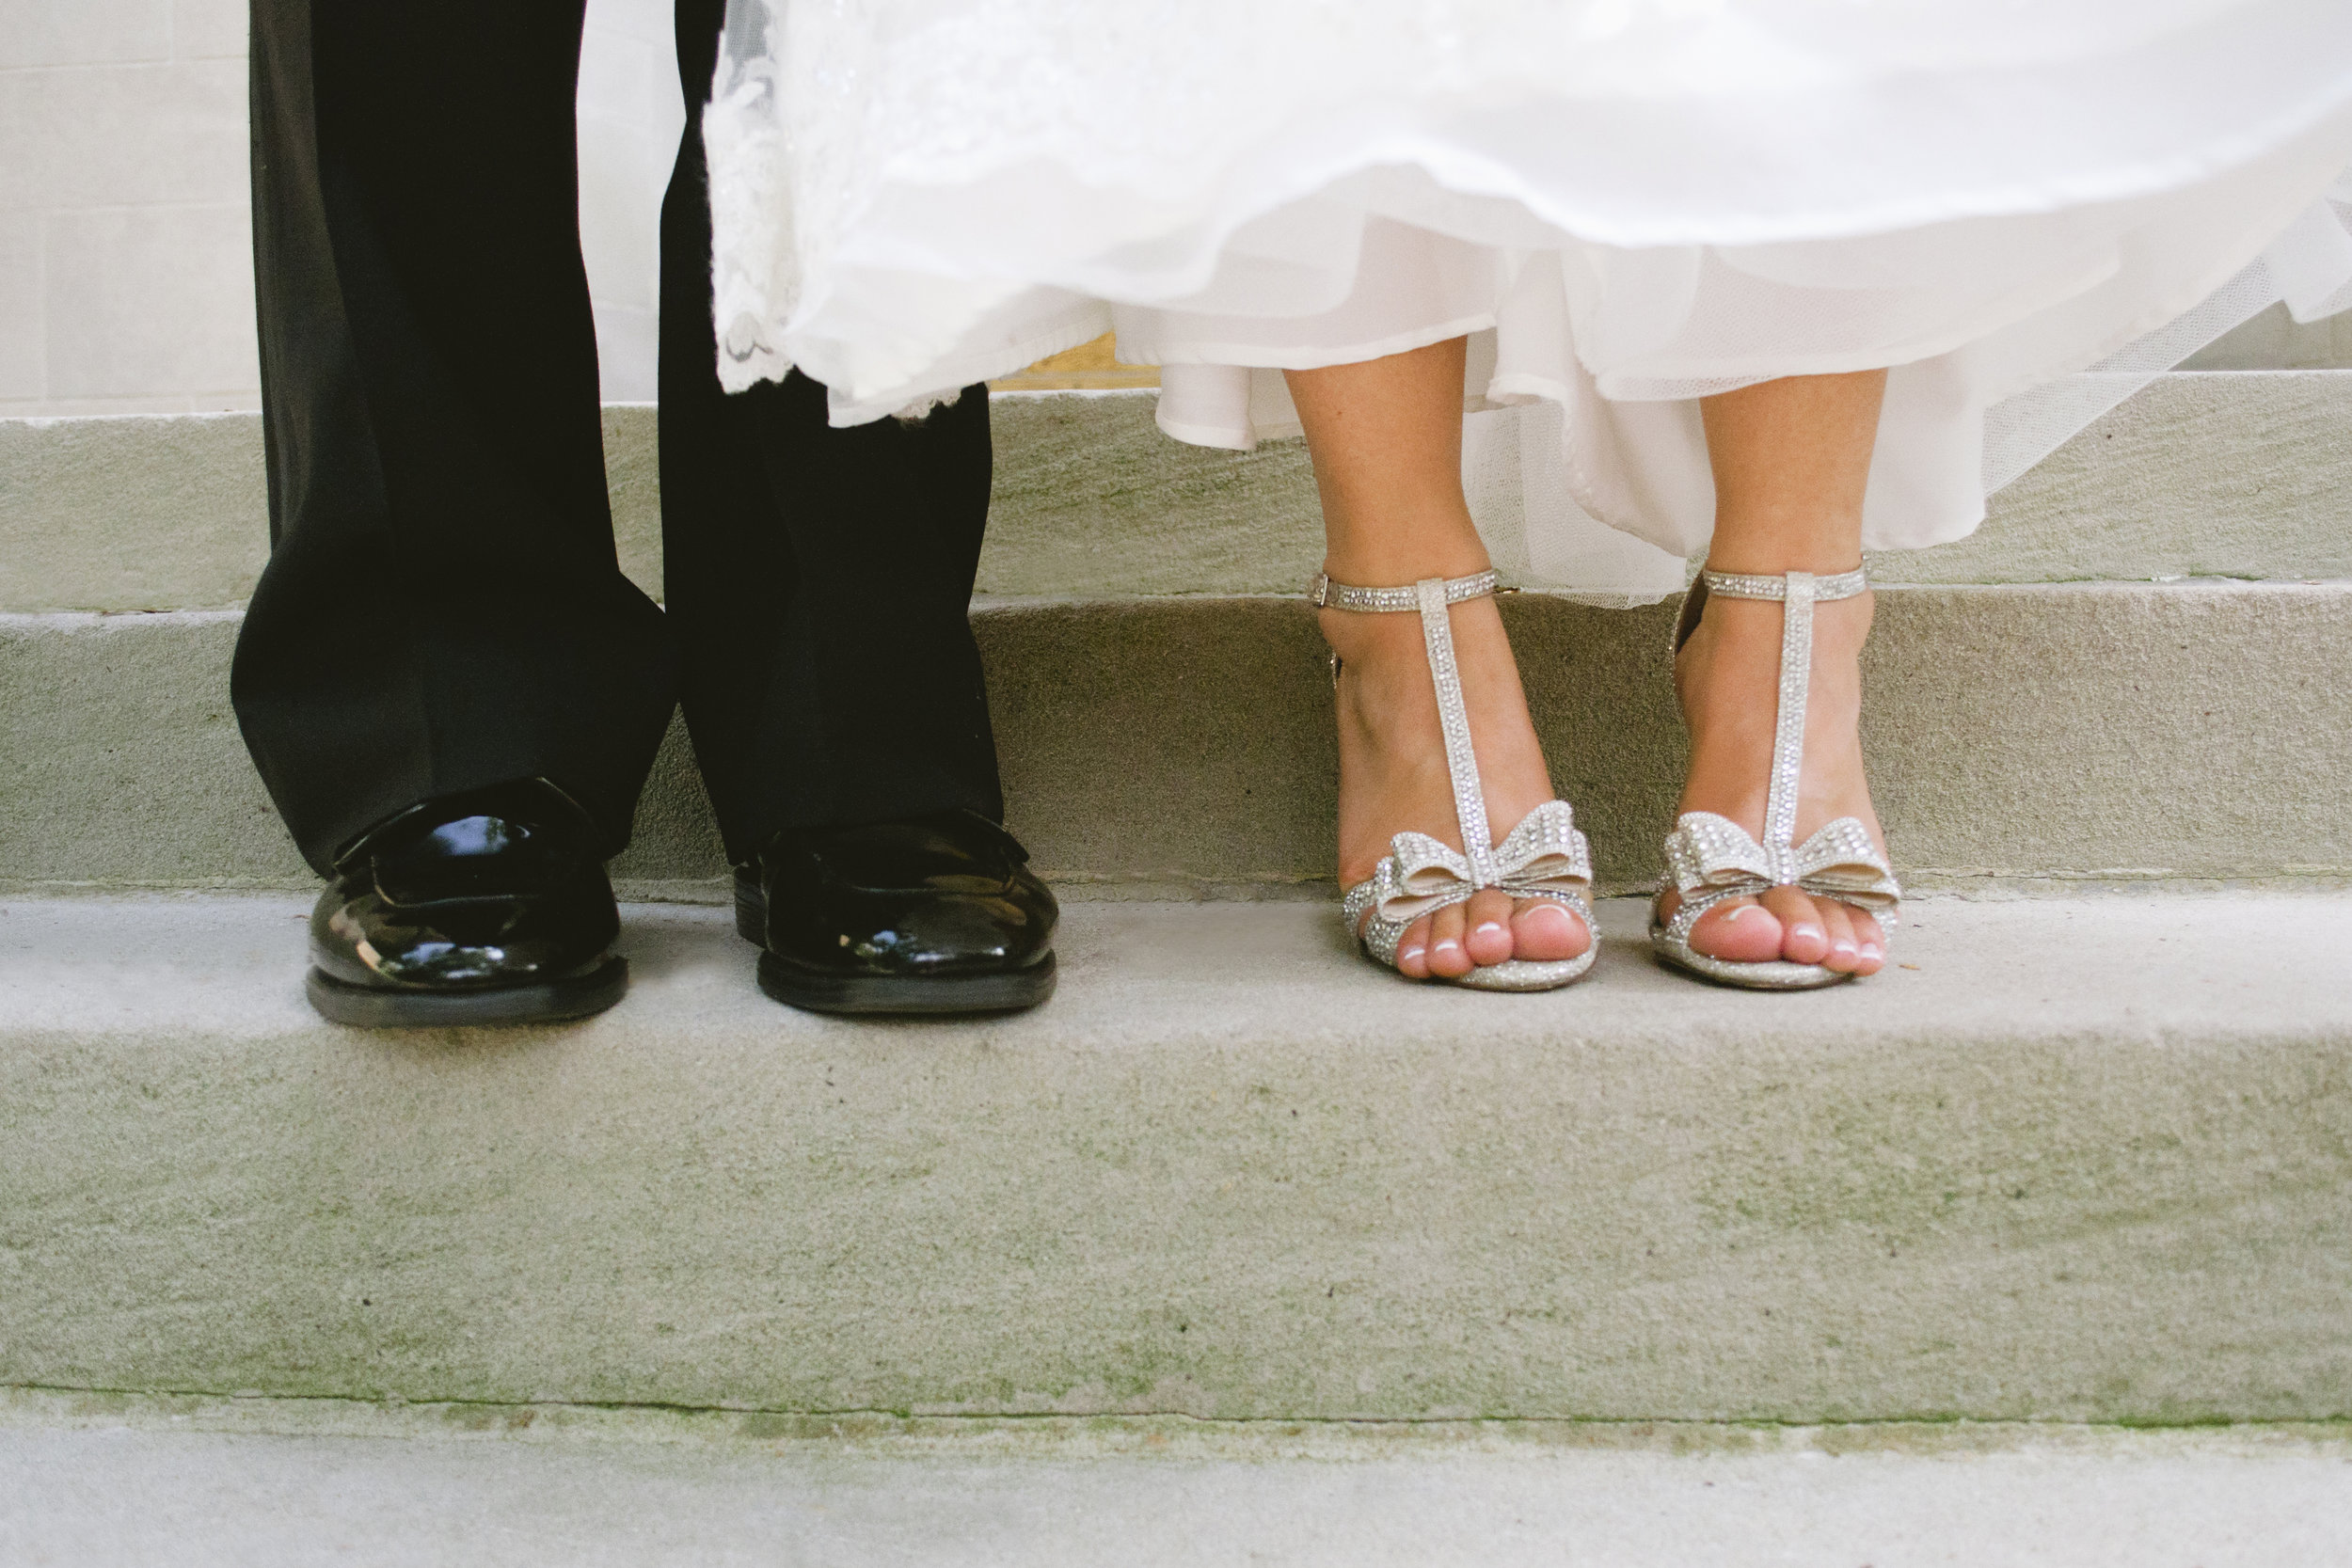 bride and groom's shoes, silver heels with bow